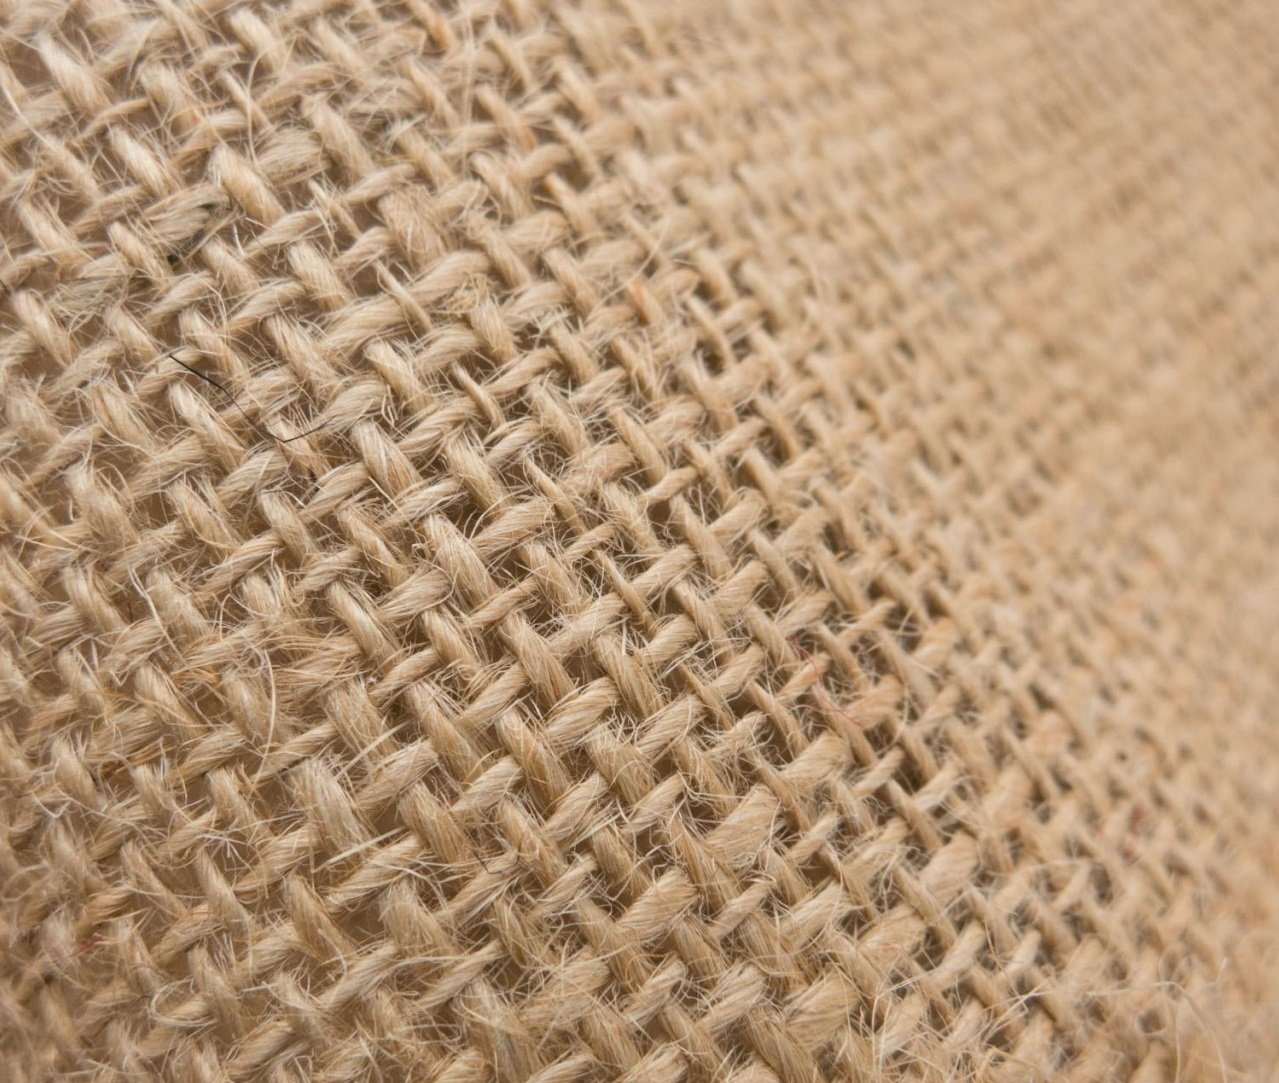 Jute Burlap Natural 40 Inch Wide Wholesale Bulk By the Roll/Bolt (100 Yard By The Roll)